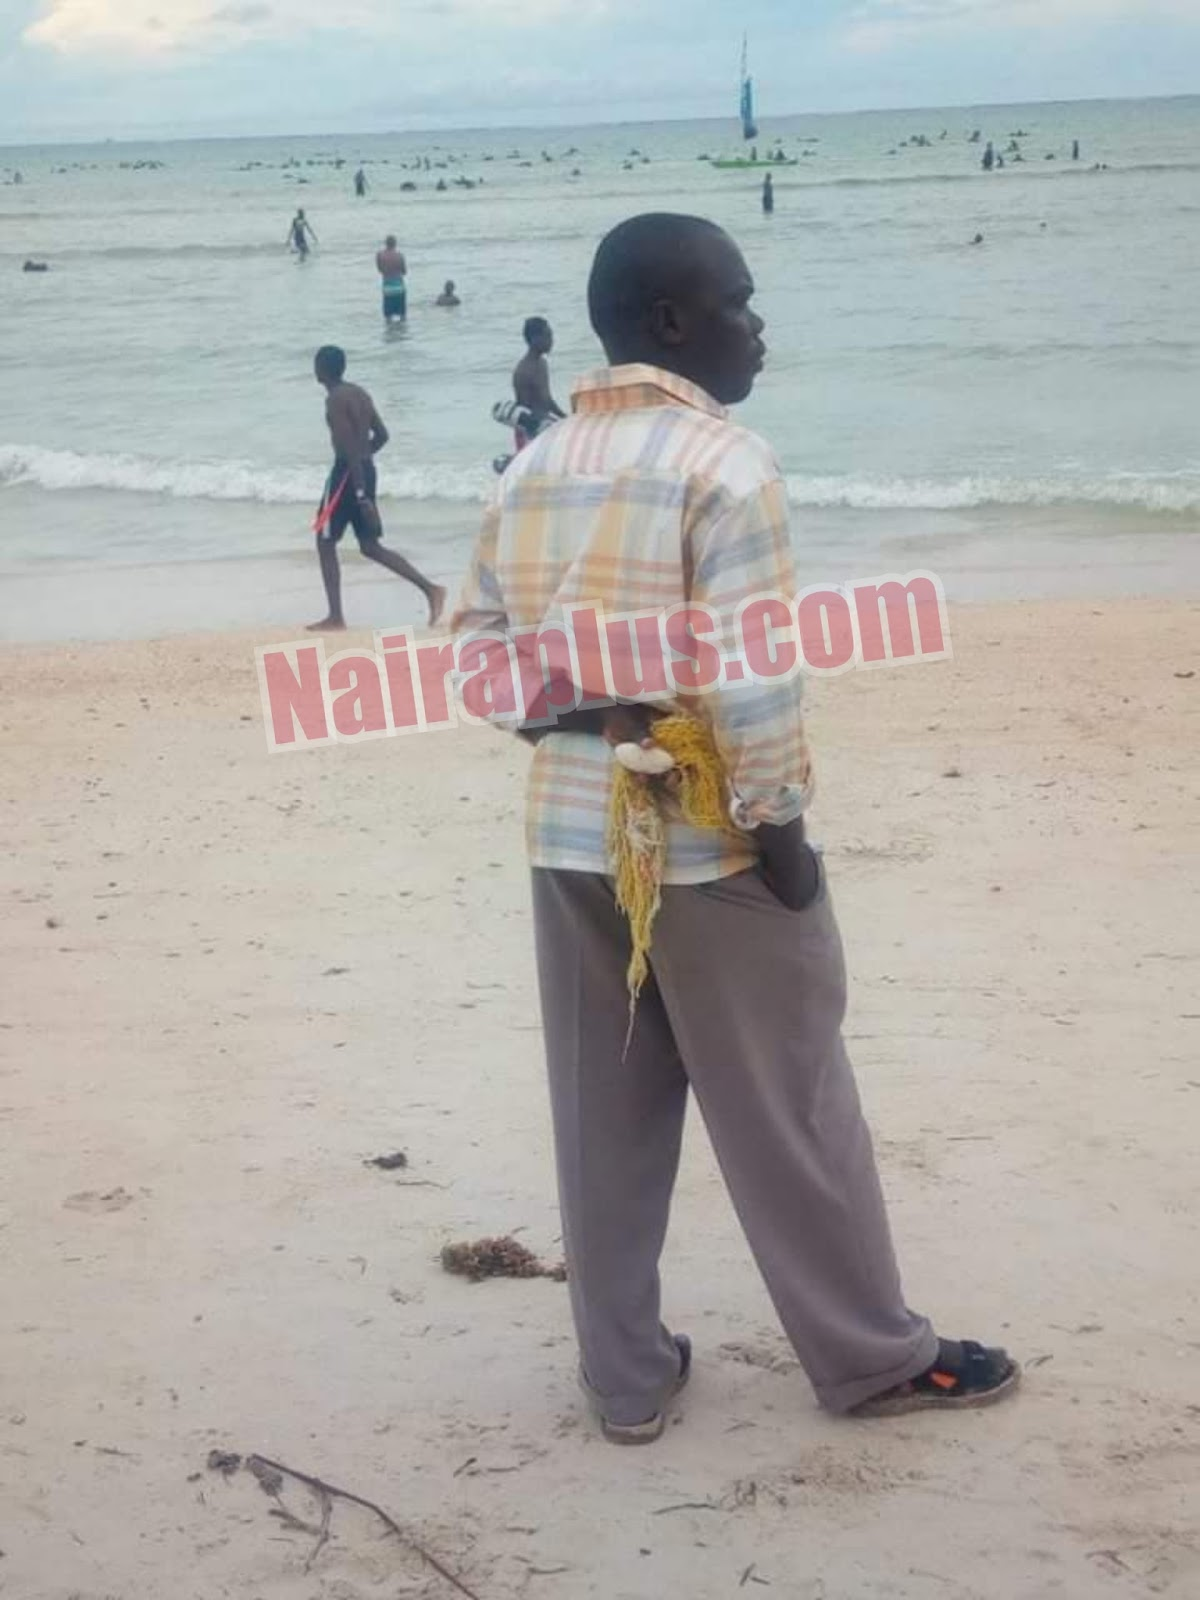 African Man Spotted With A Sponge And Soap, Getting Ready To Bath At The Beach.